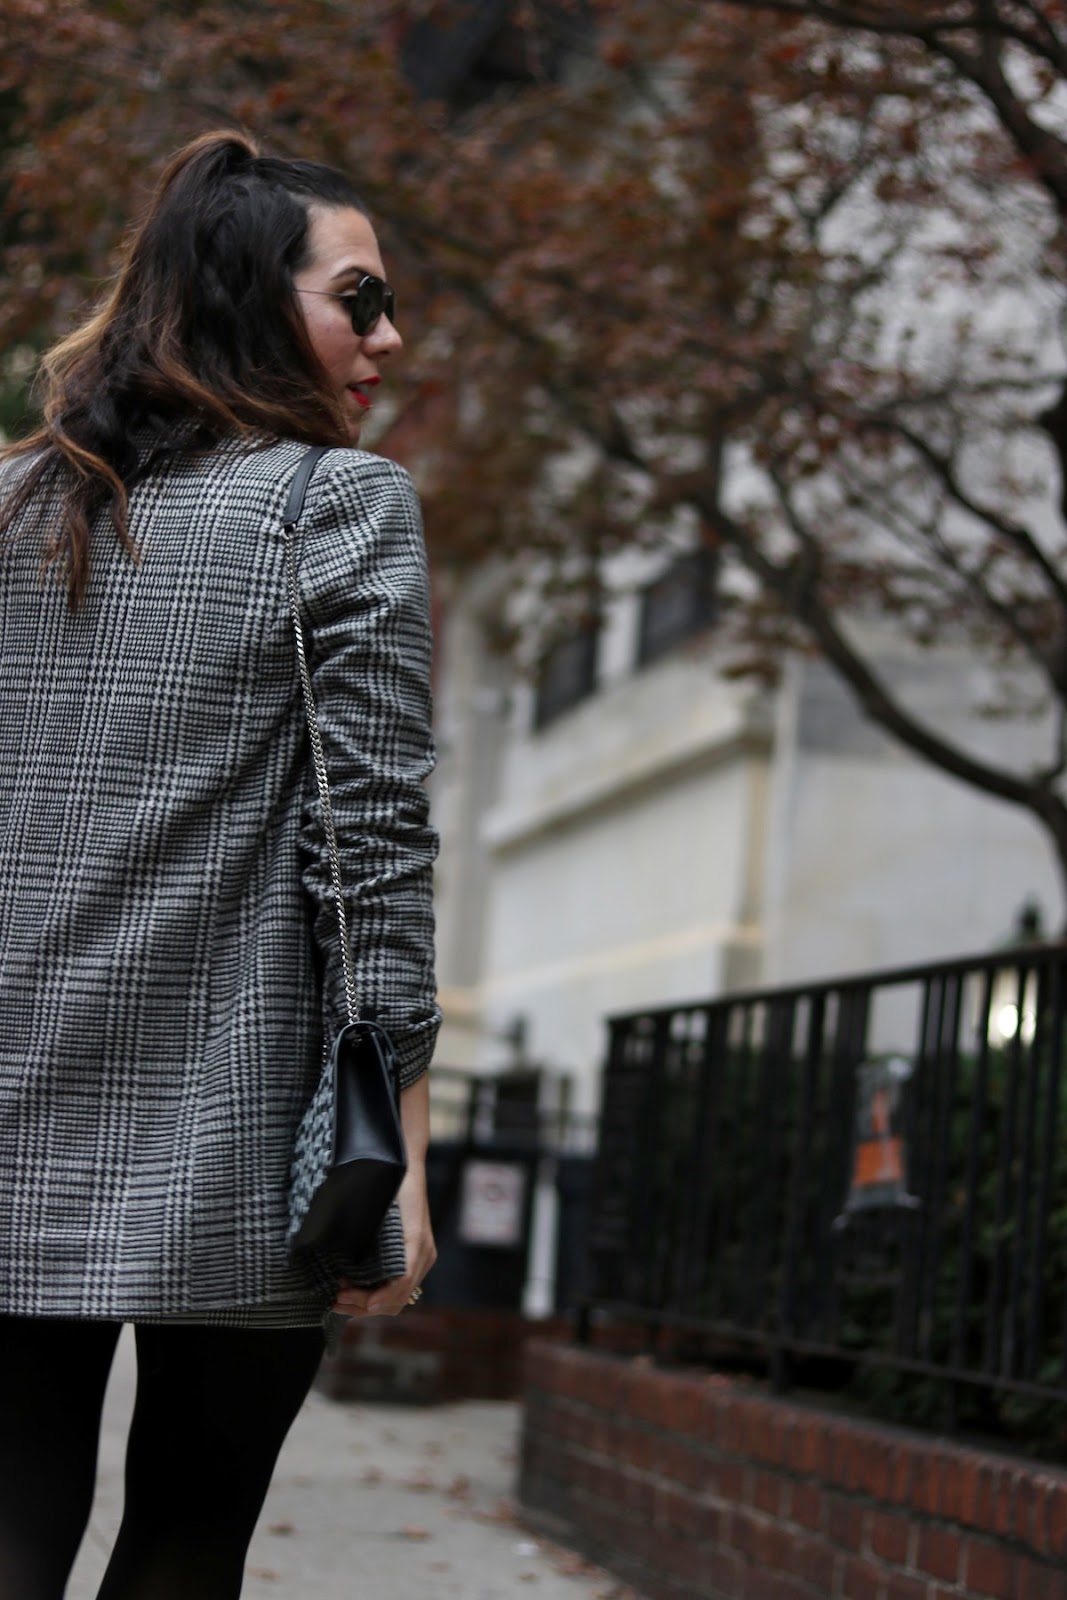 Le Chateau houndstooth skirt h&m oversized plaid blazer cute winter outfit ysl star handbag